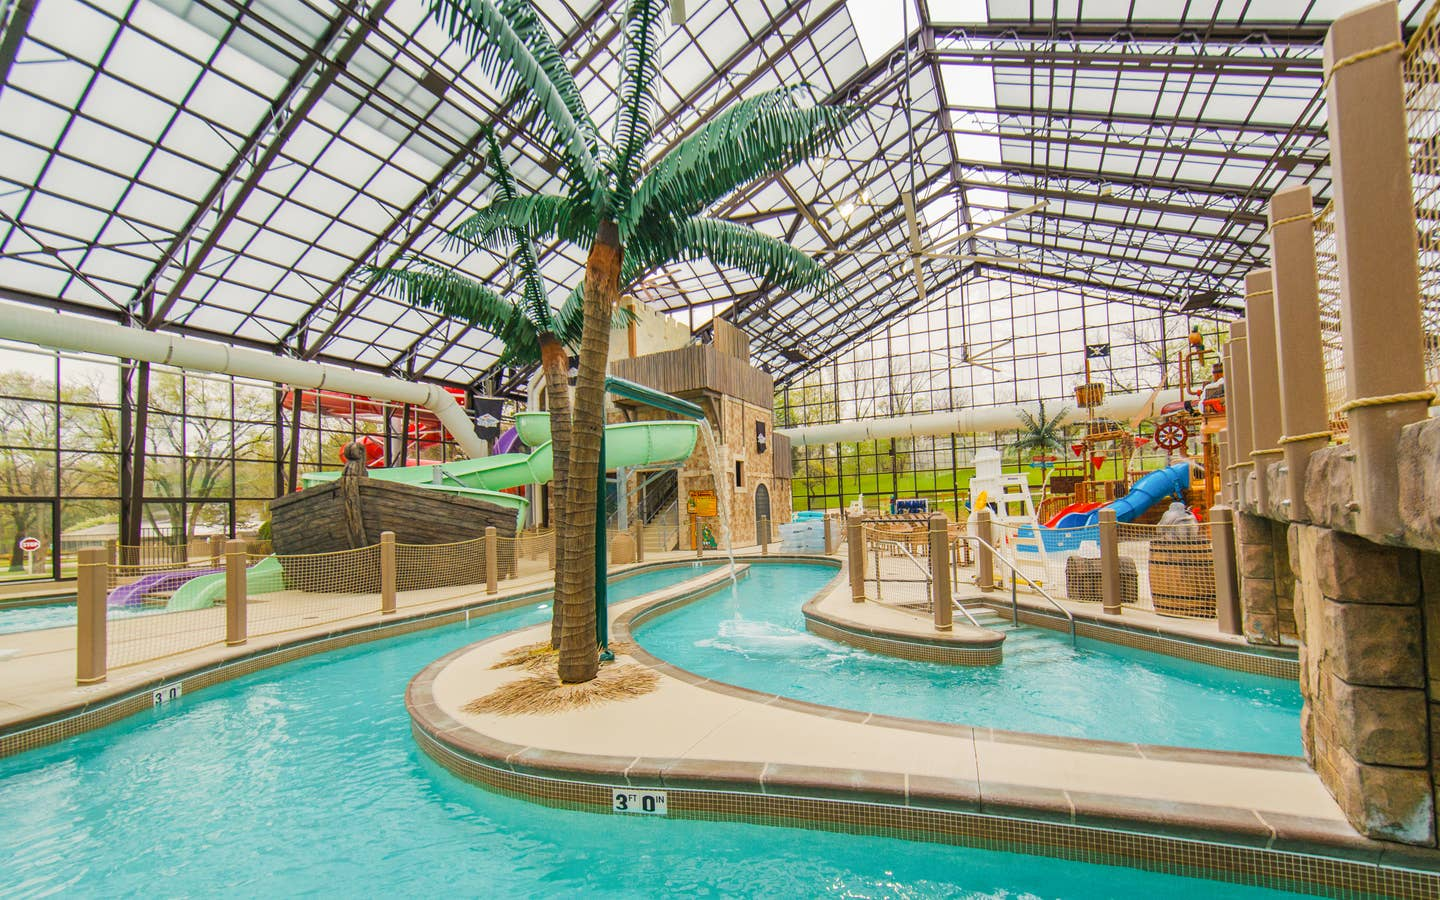 Lazy river at Pirate's Cay Indoor Waterpark at Fox River Resort in Sheridan, Illinois.